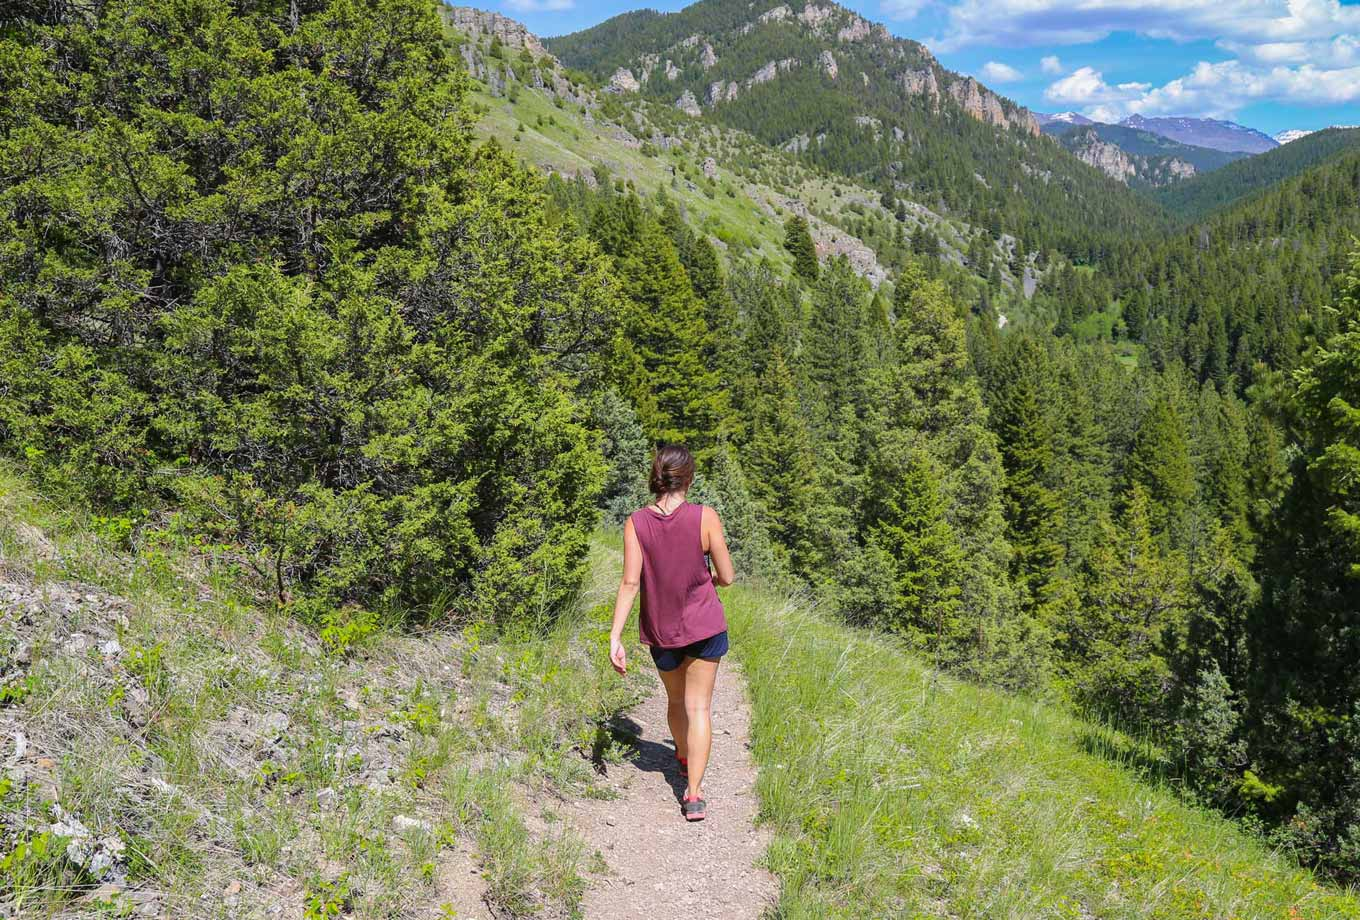 Summer hiking in Yellowstone National Park